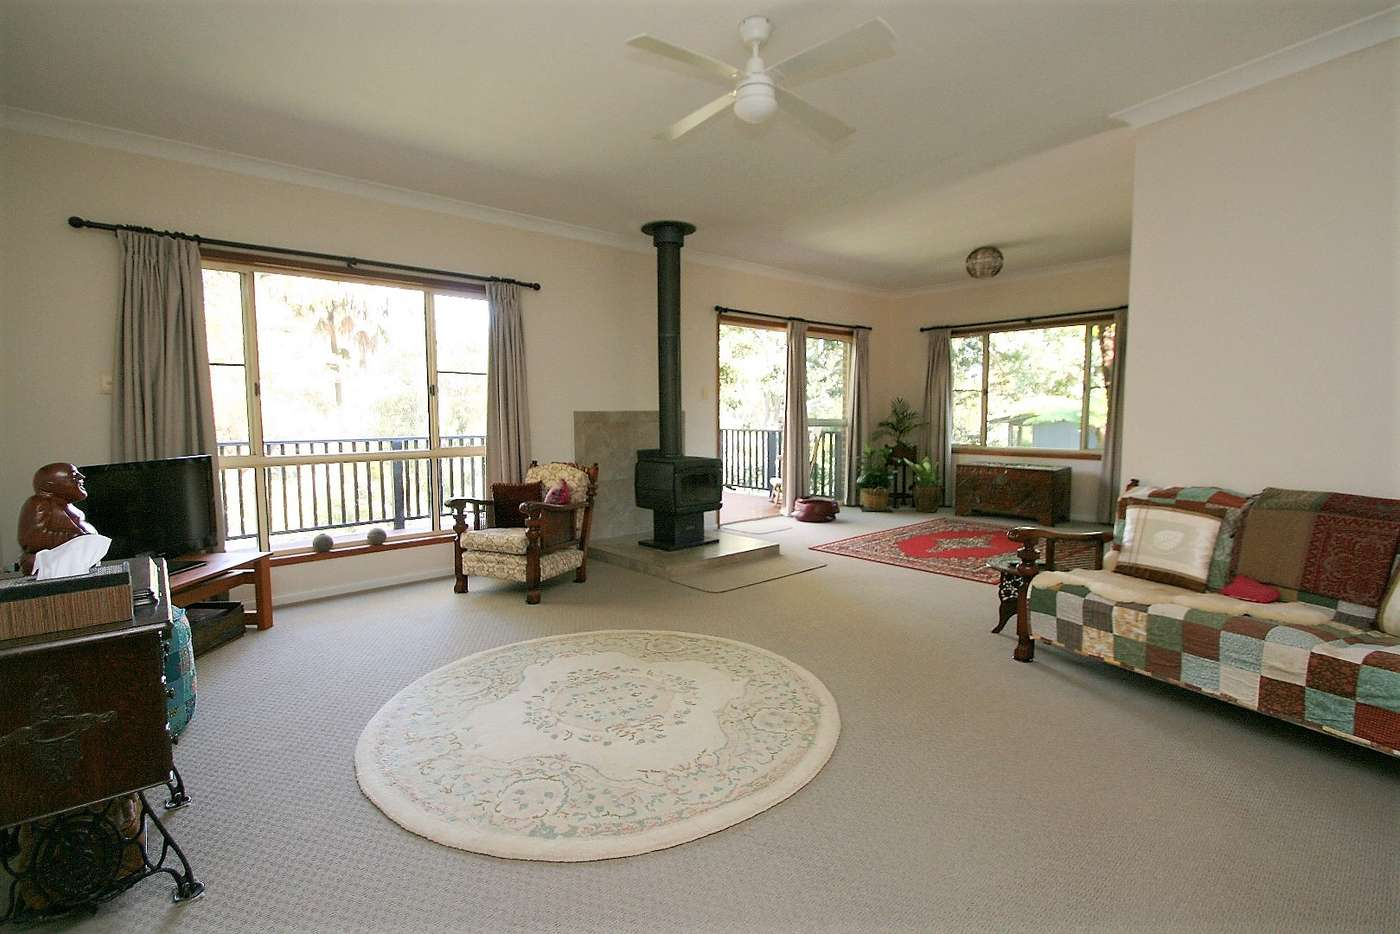 Seventh view of Homely house listing, 8 Phillip Road, Smiths Lake NSW 2428